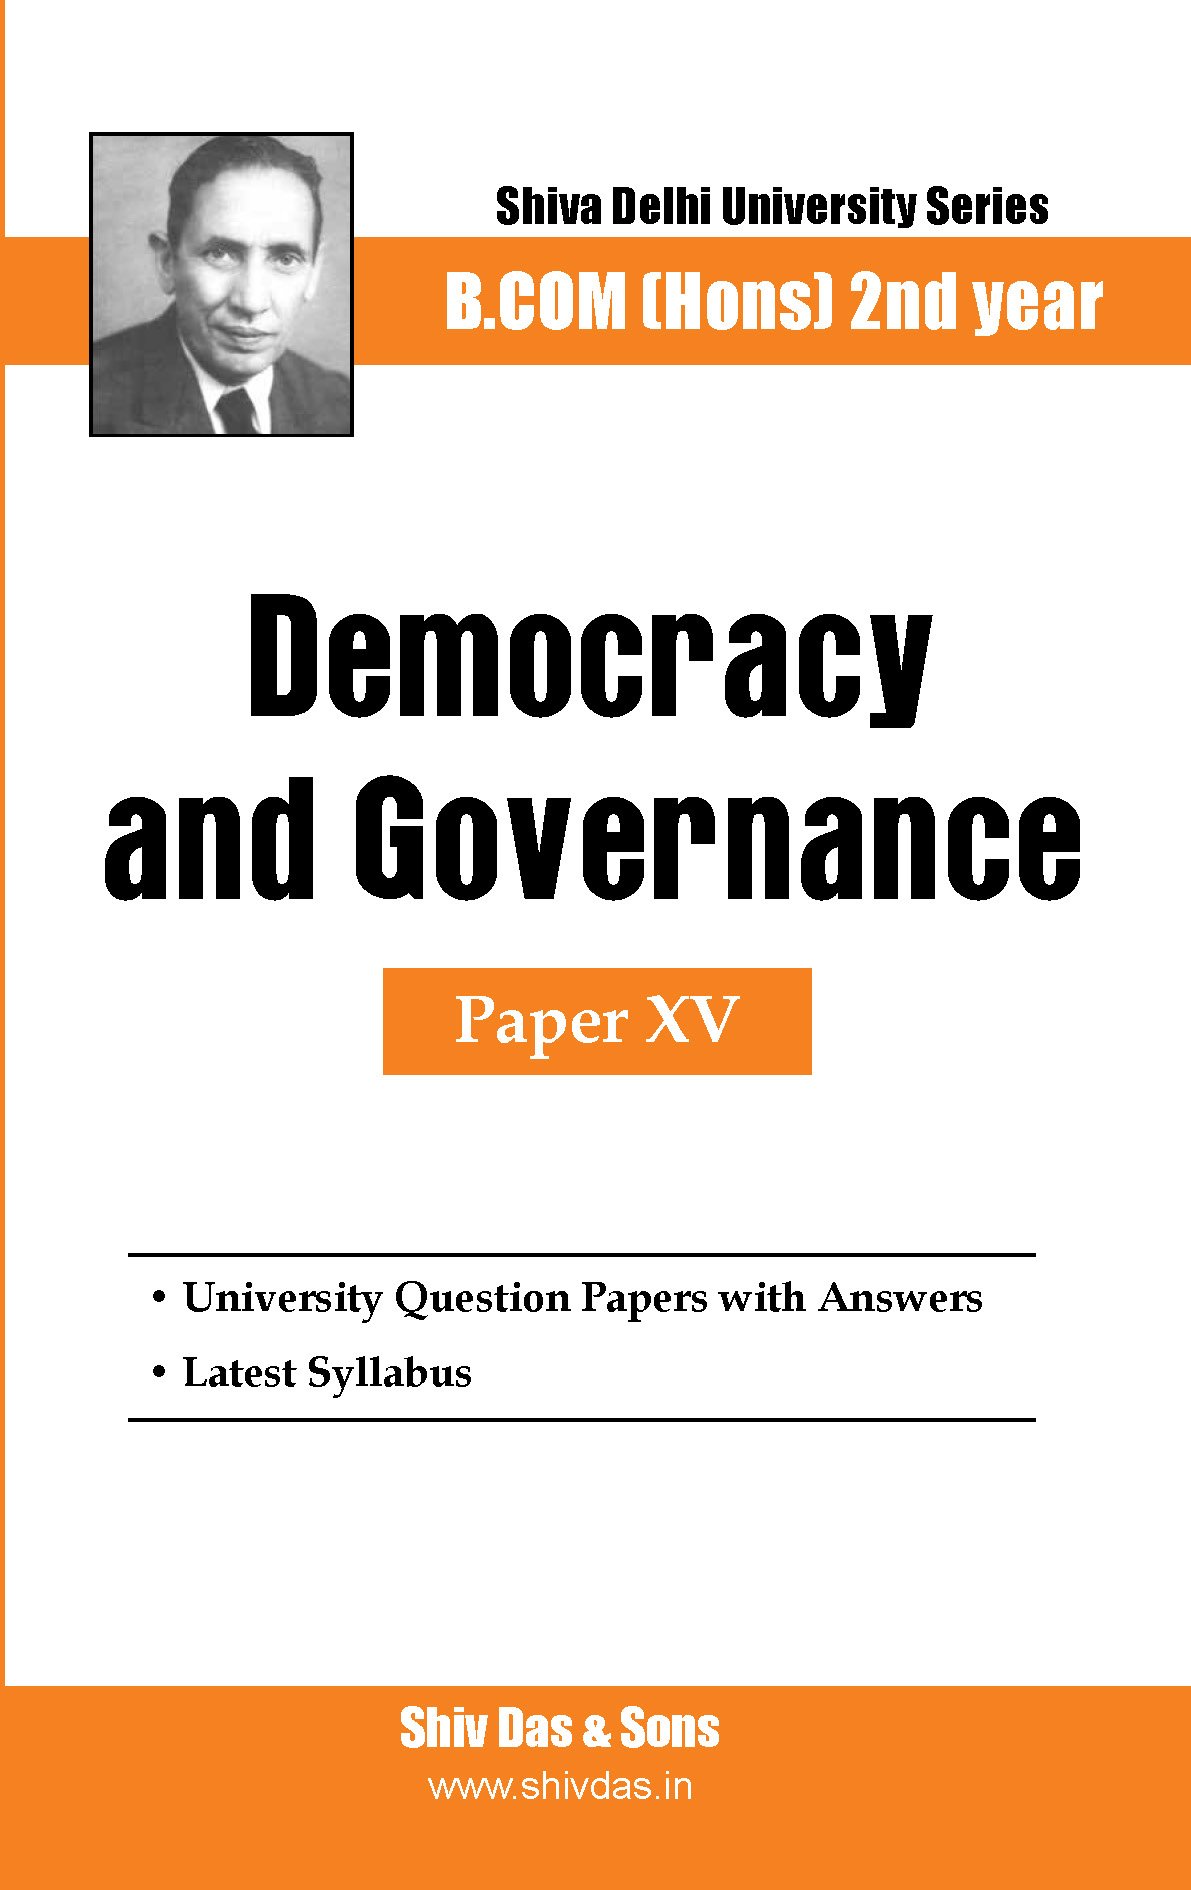 B.Com Hons-SOL/External-2nd Year-Democracy and Governance-Shiv Das-Delhi University Series